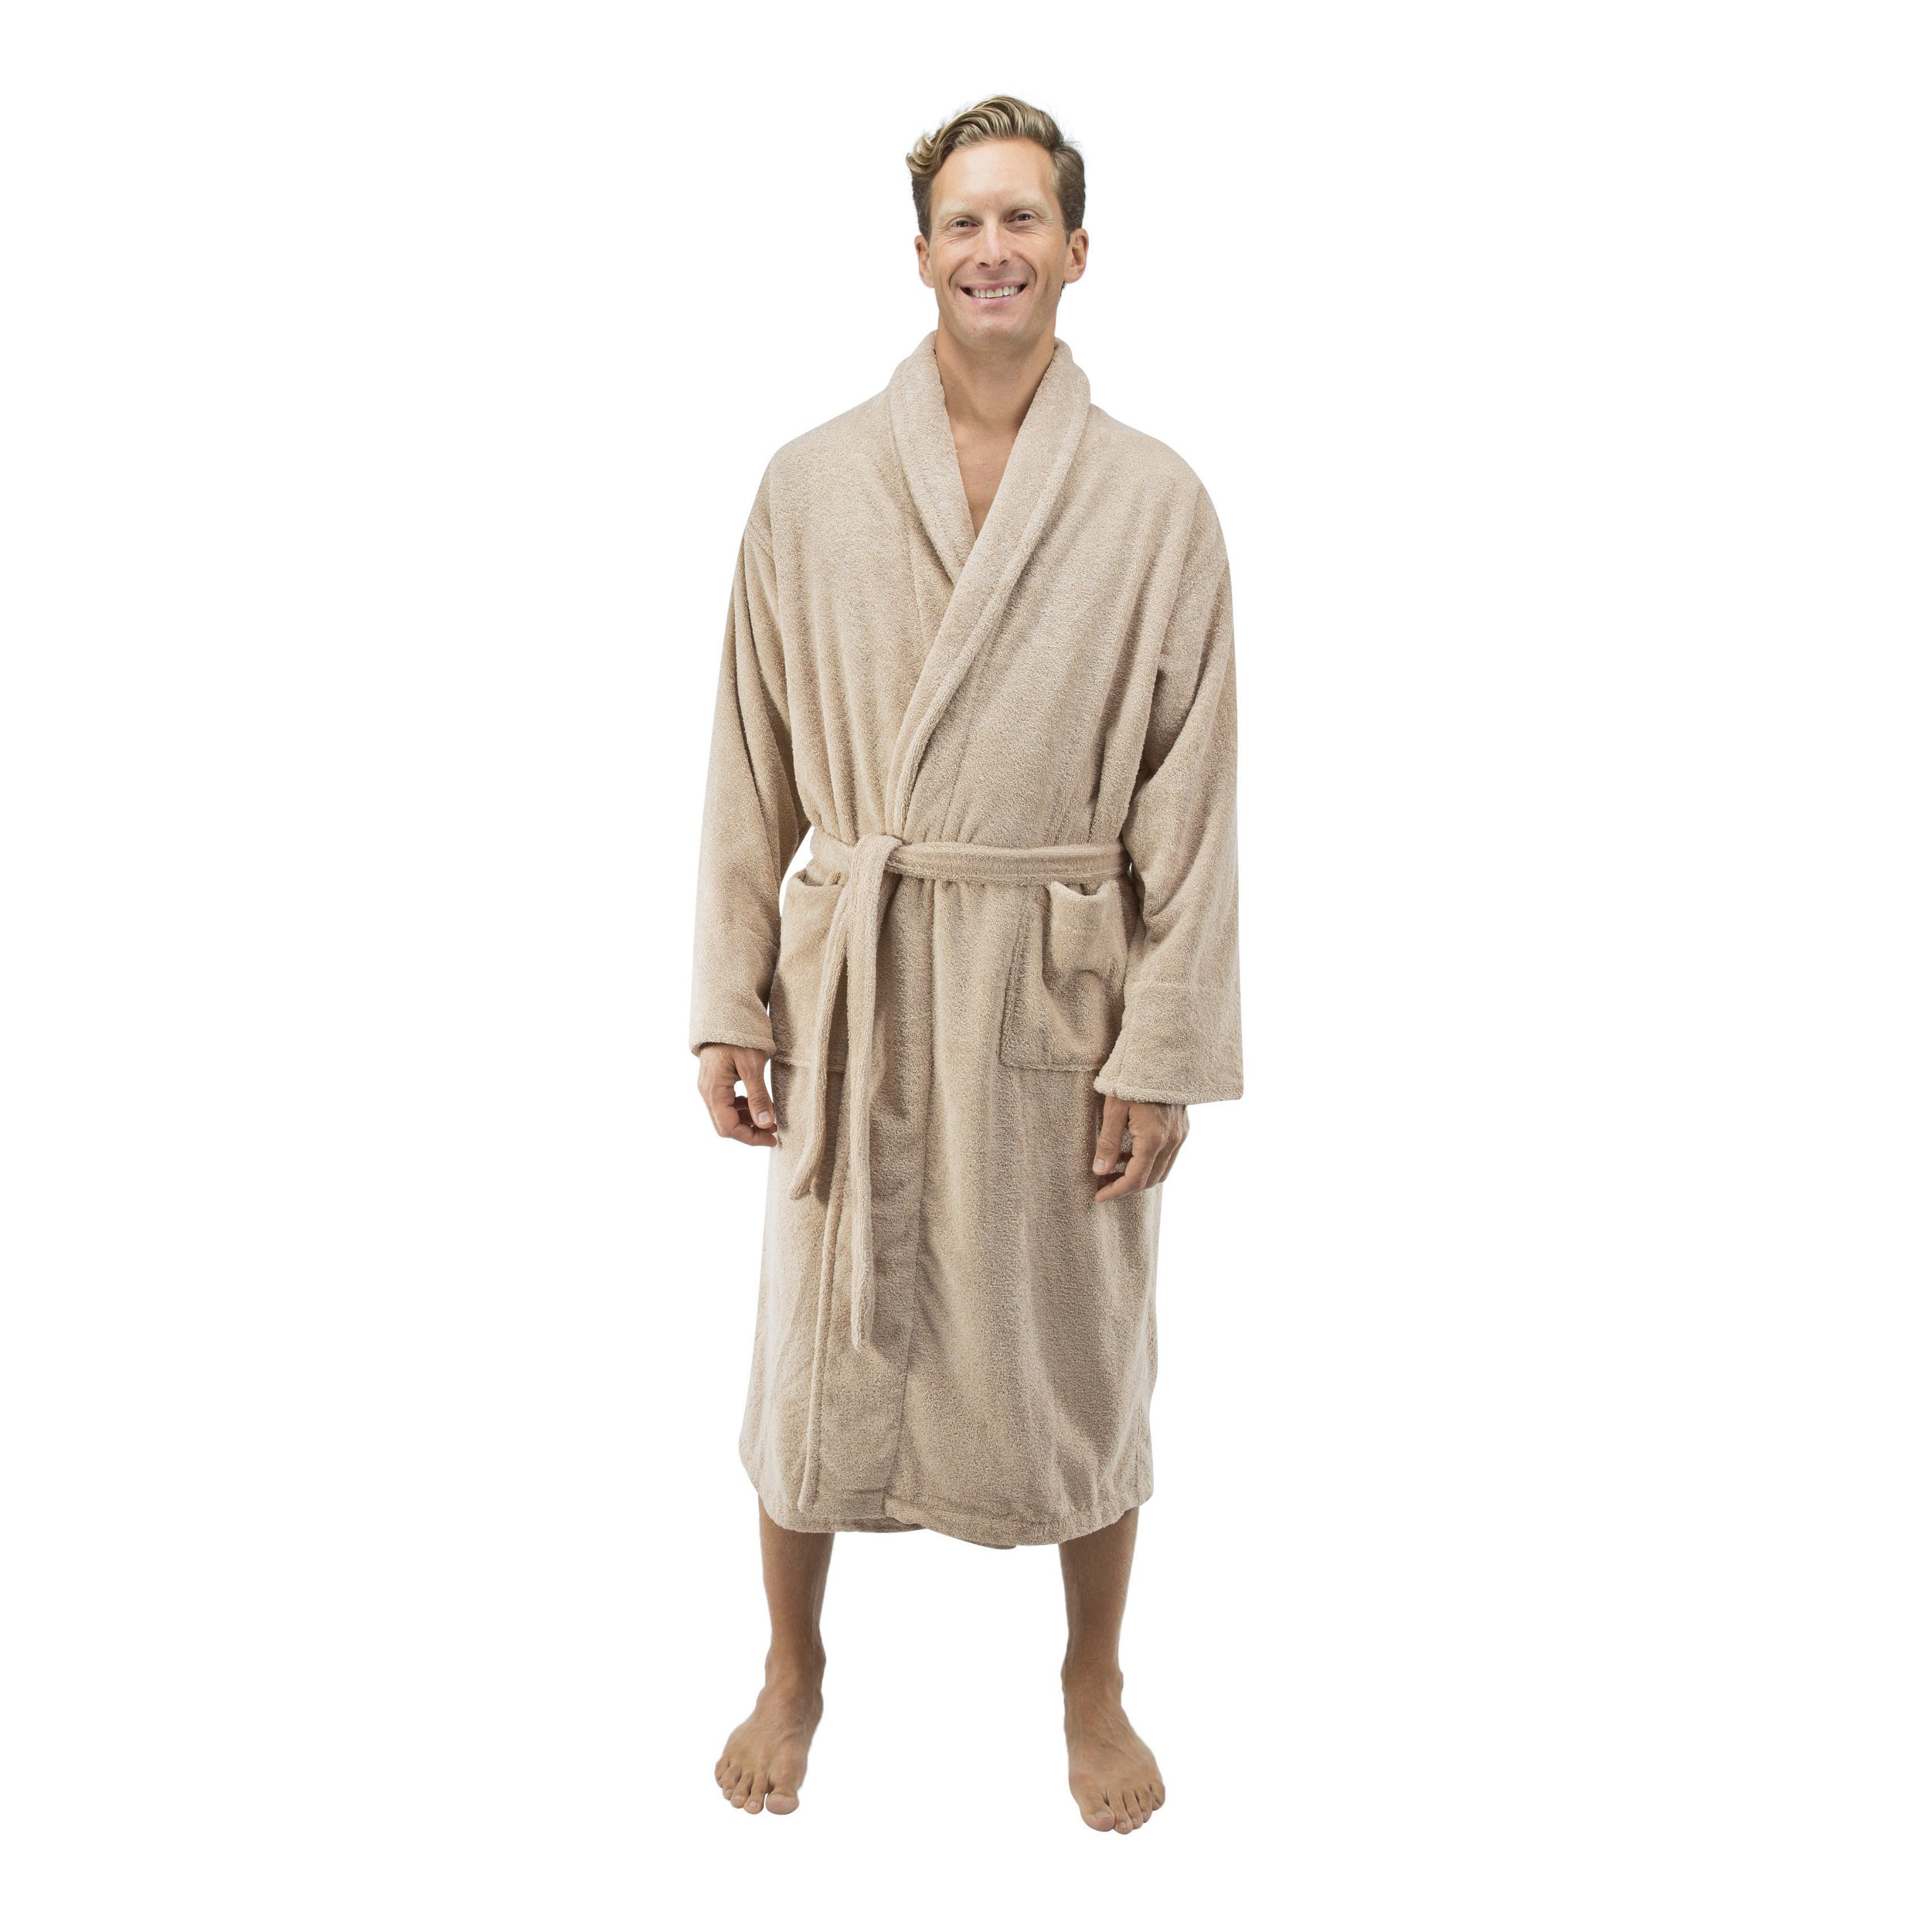 Comfy Robes Personalized Men's 16 oz. Turkish Terry Cotton Bathrobe, XXL Beige